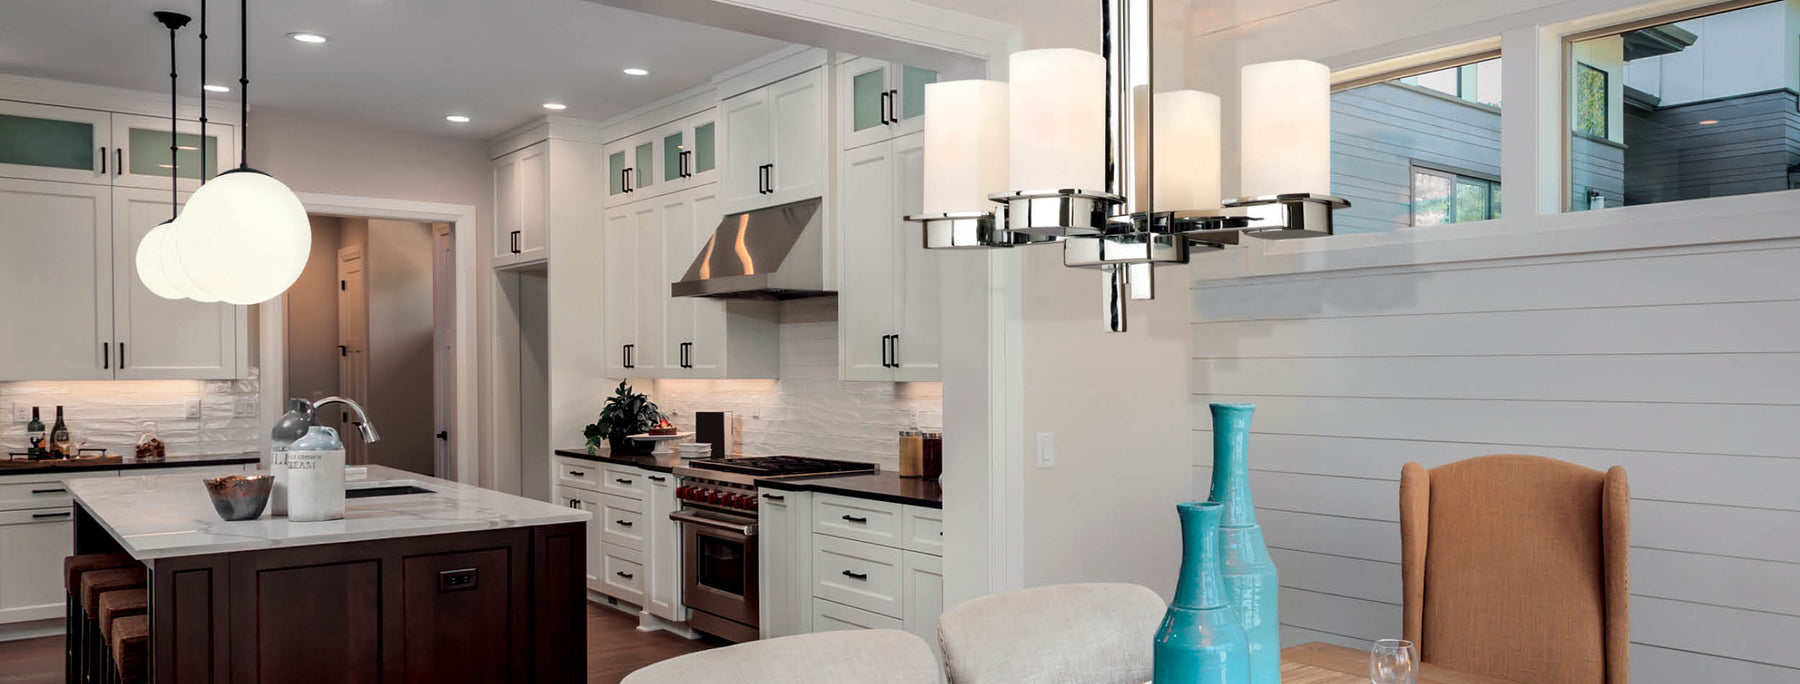 Lighting the kitchen with contemporary fixtures